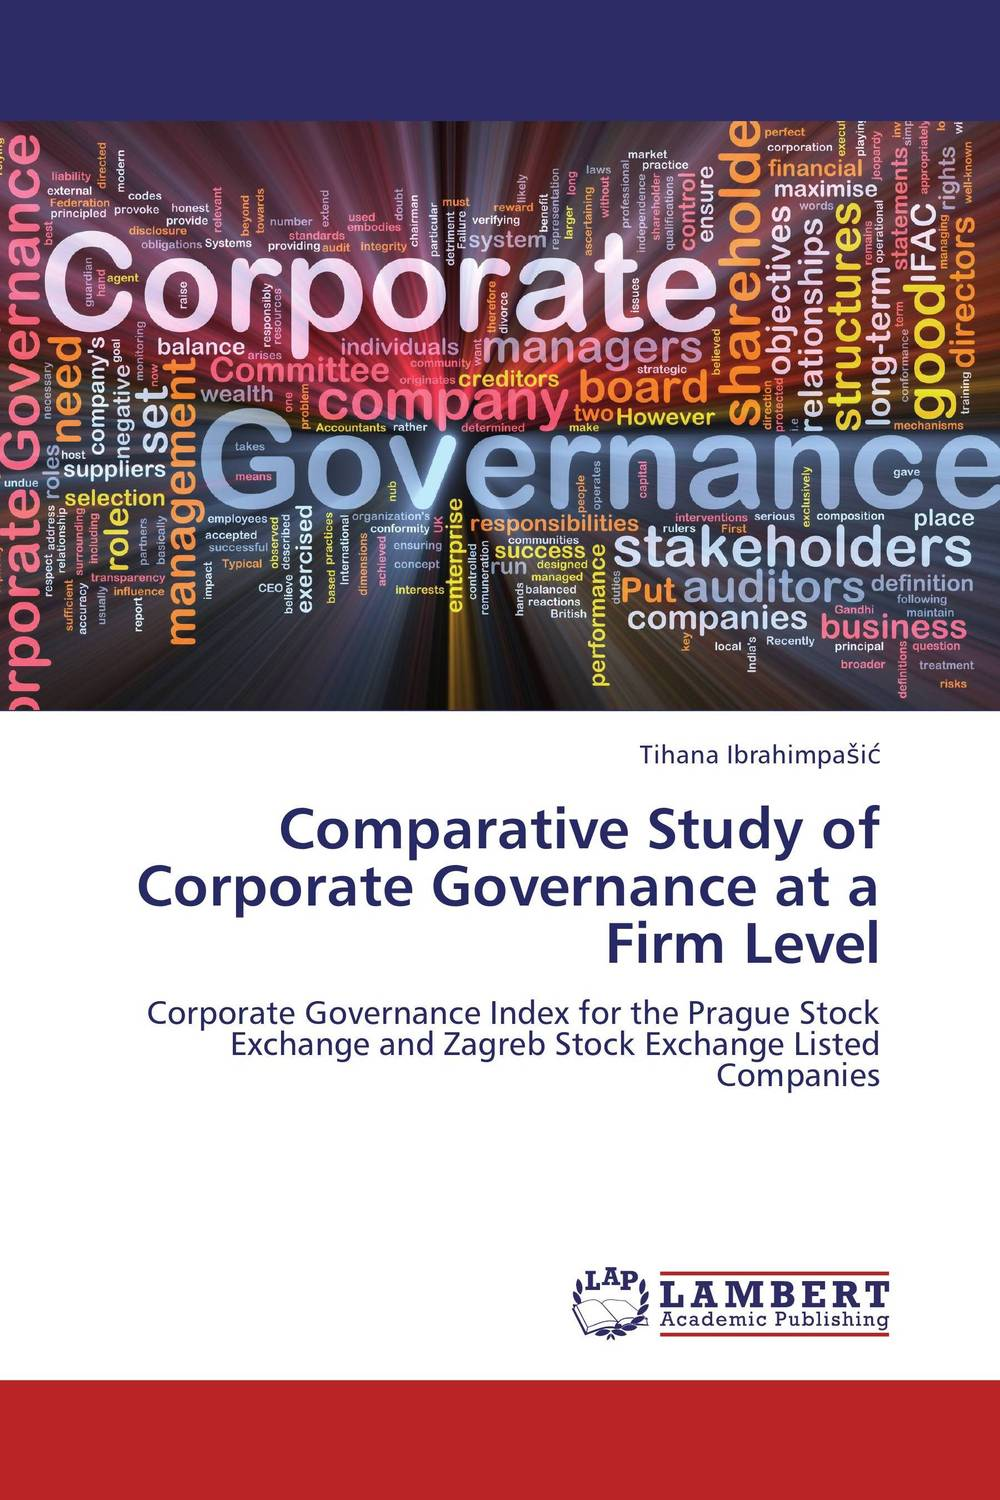 Comparative Study of Corporate Governance at a Firm Level corporate governance audit quality and opportunistic earnings